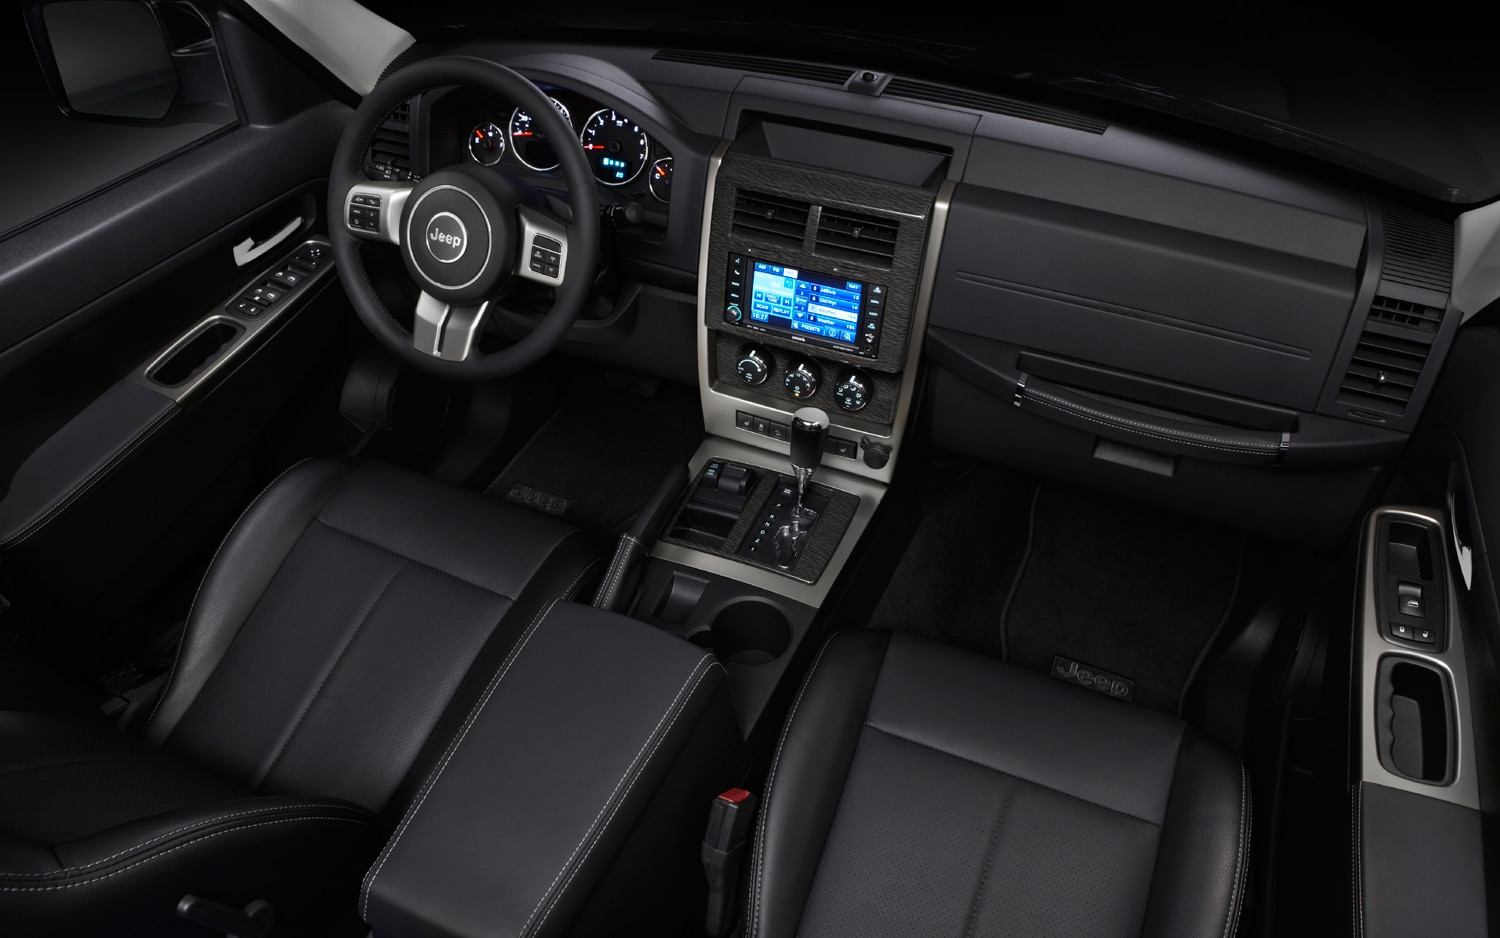 2008 jeep liberty - latest news, features, and auto show coverage